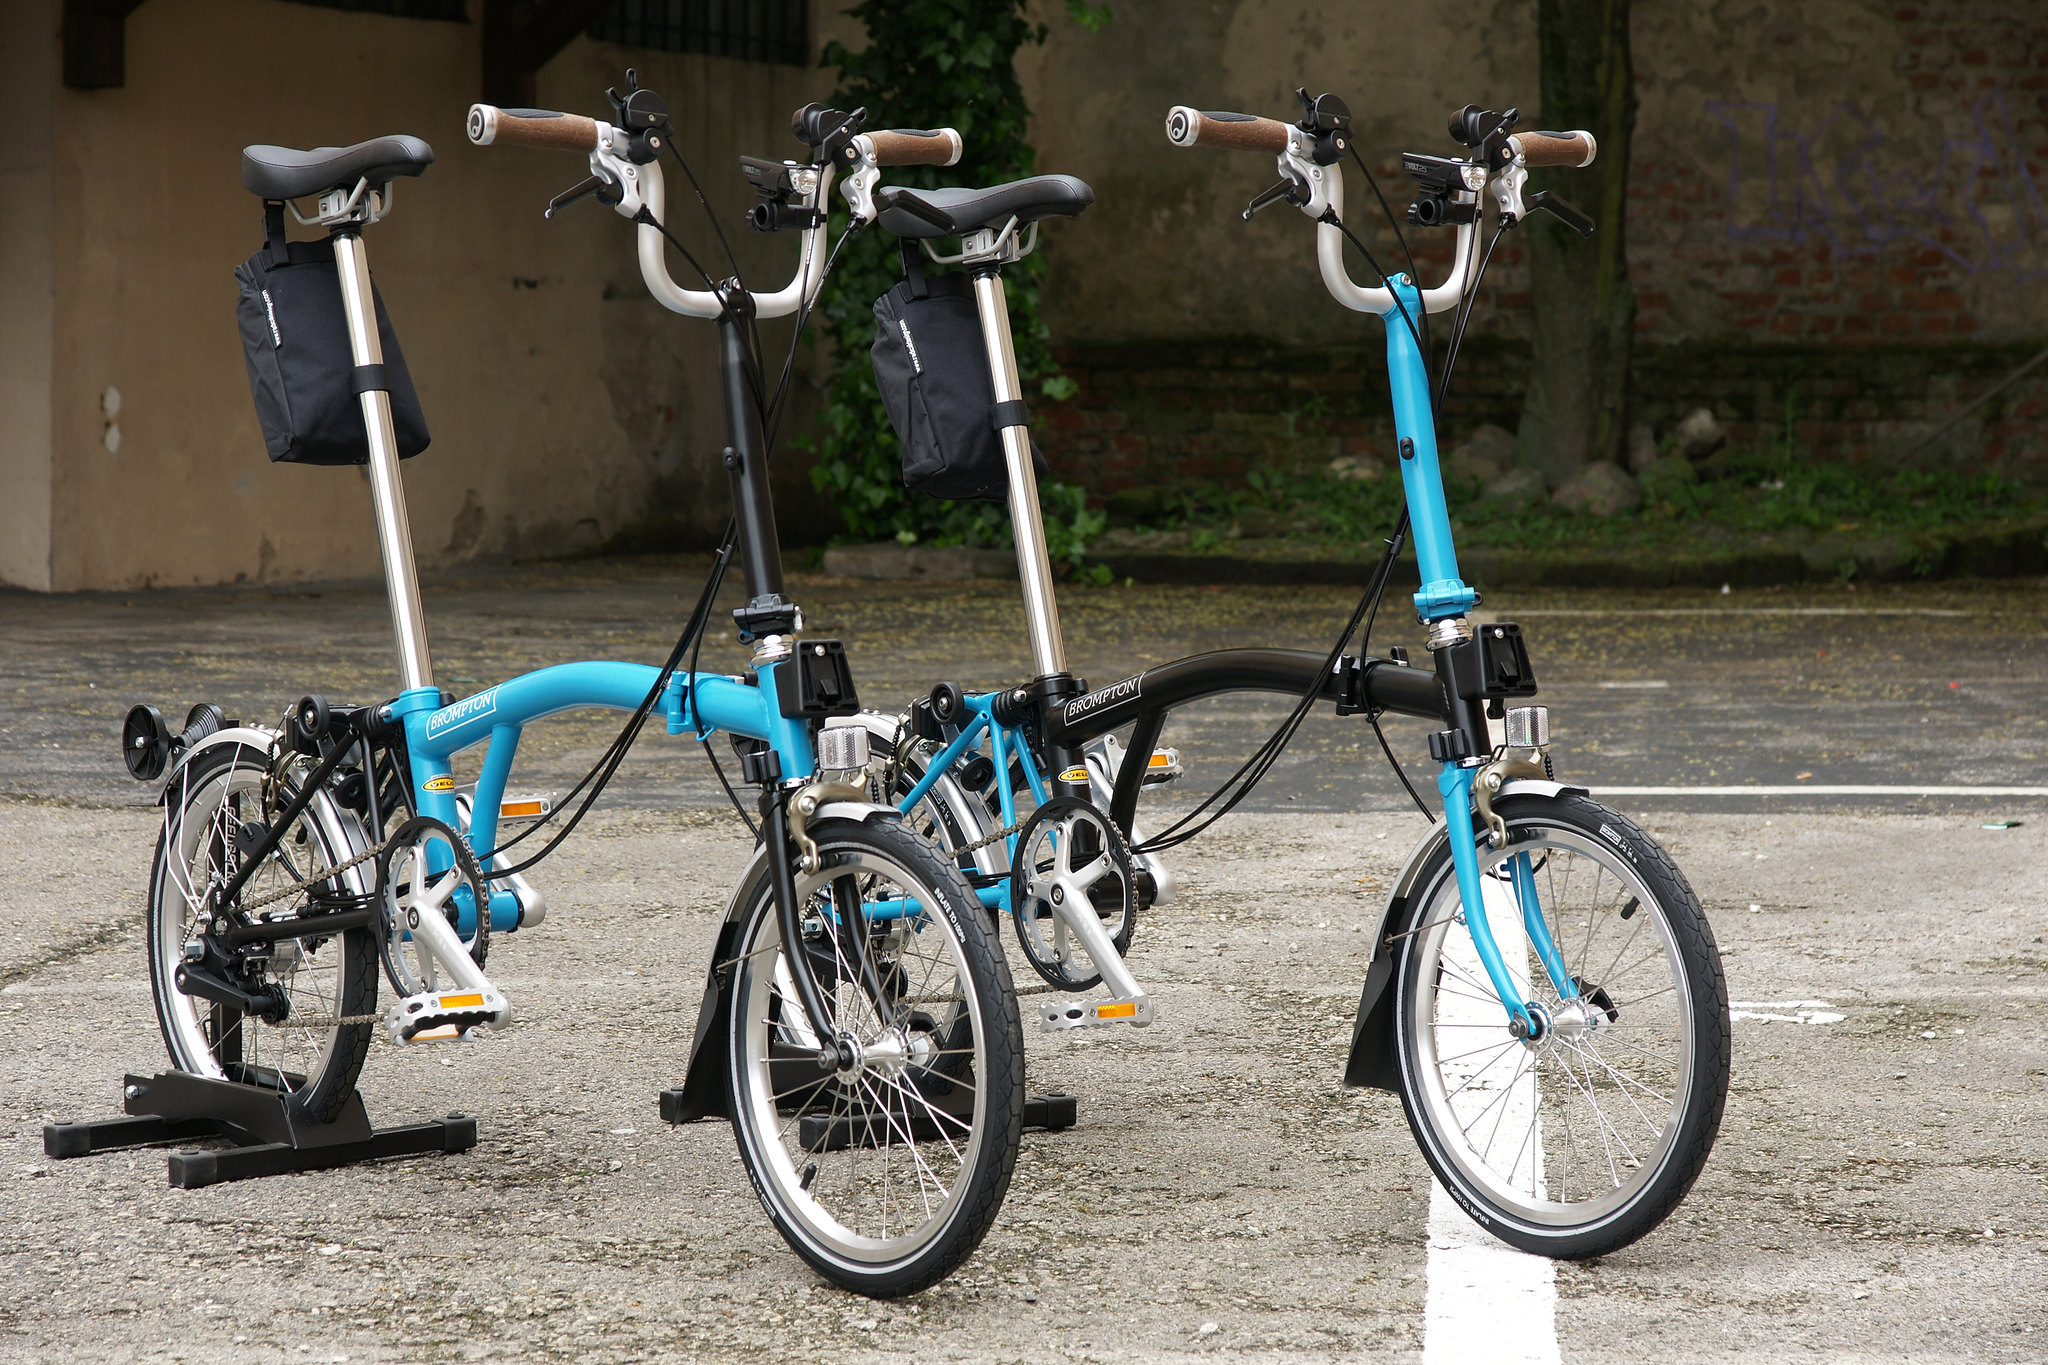 The Tortoise And The Unicorn—Brompton's Slow Ride To Becoming A Billion-Dollar Brand